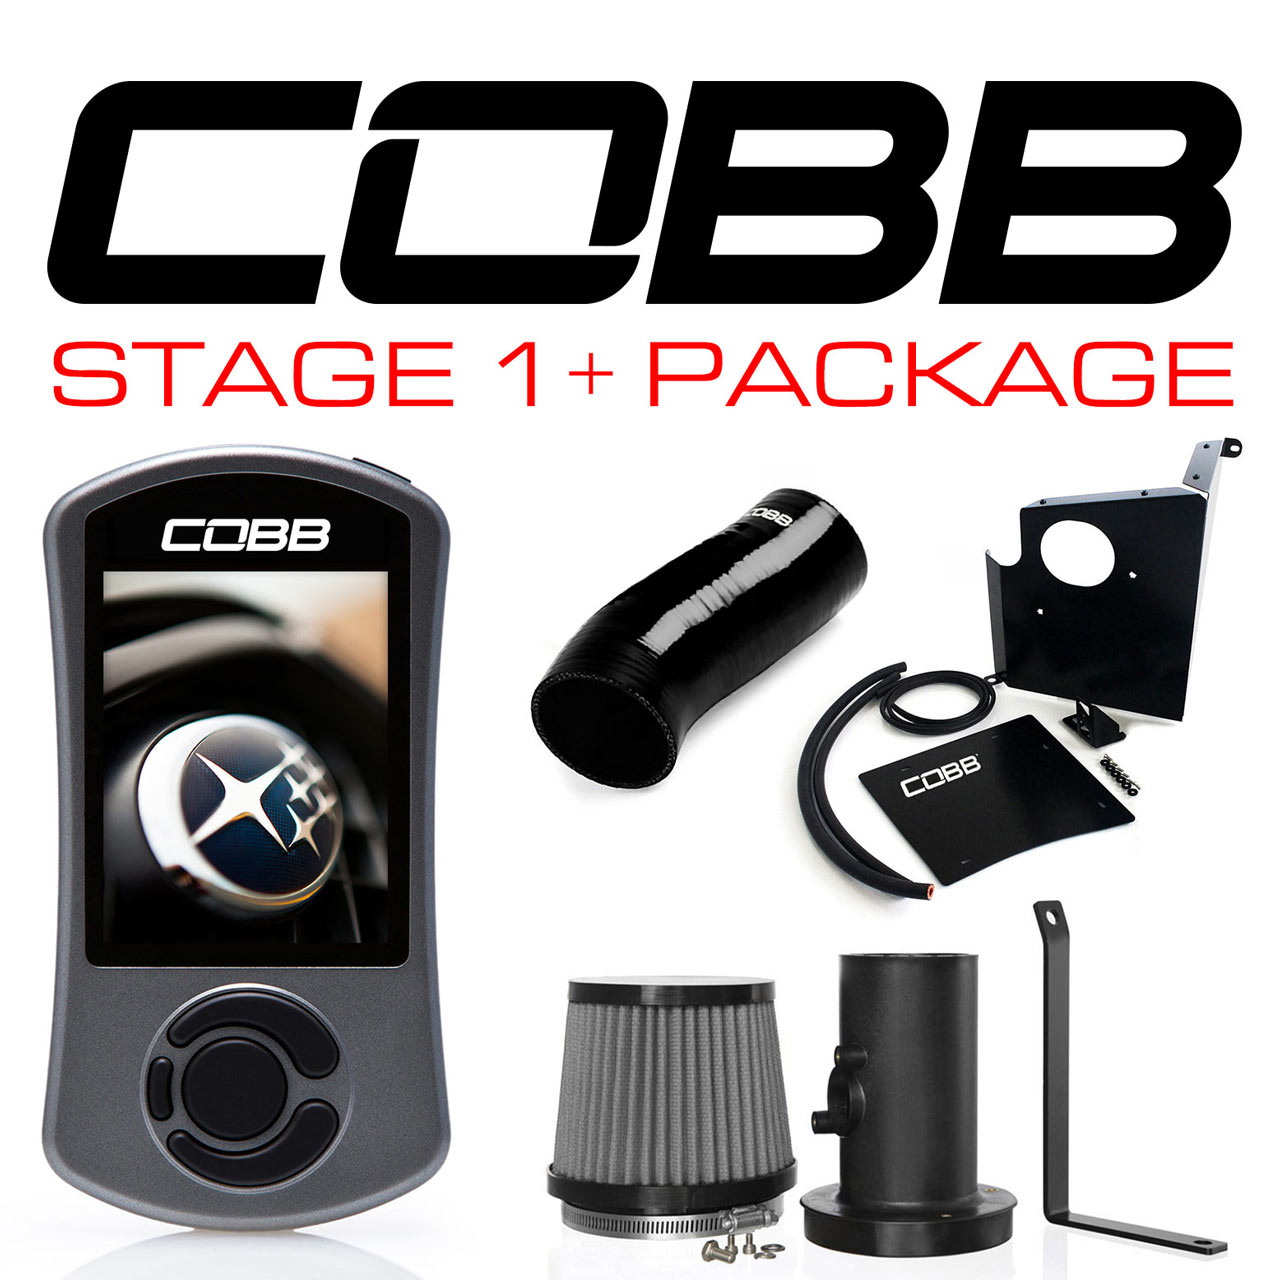 COBB Stage 1 Power Package W V3 AccessPort 2006 2007 WRX